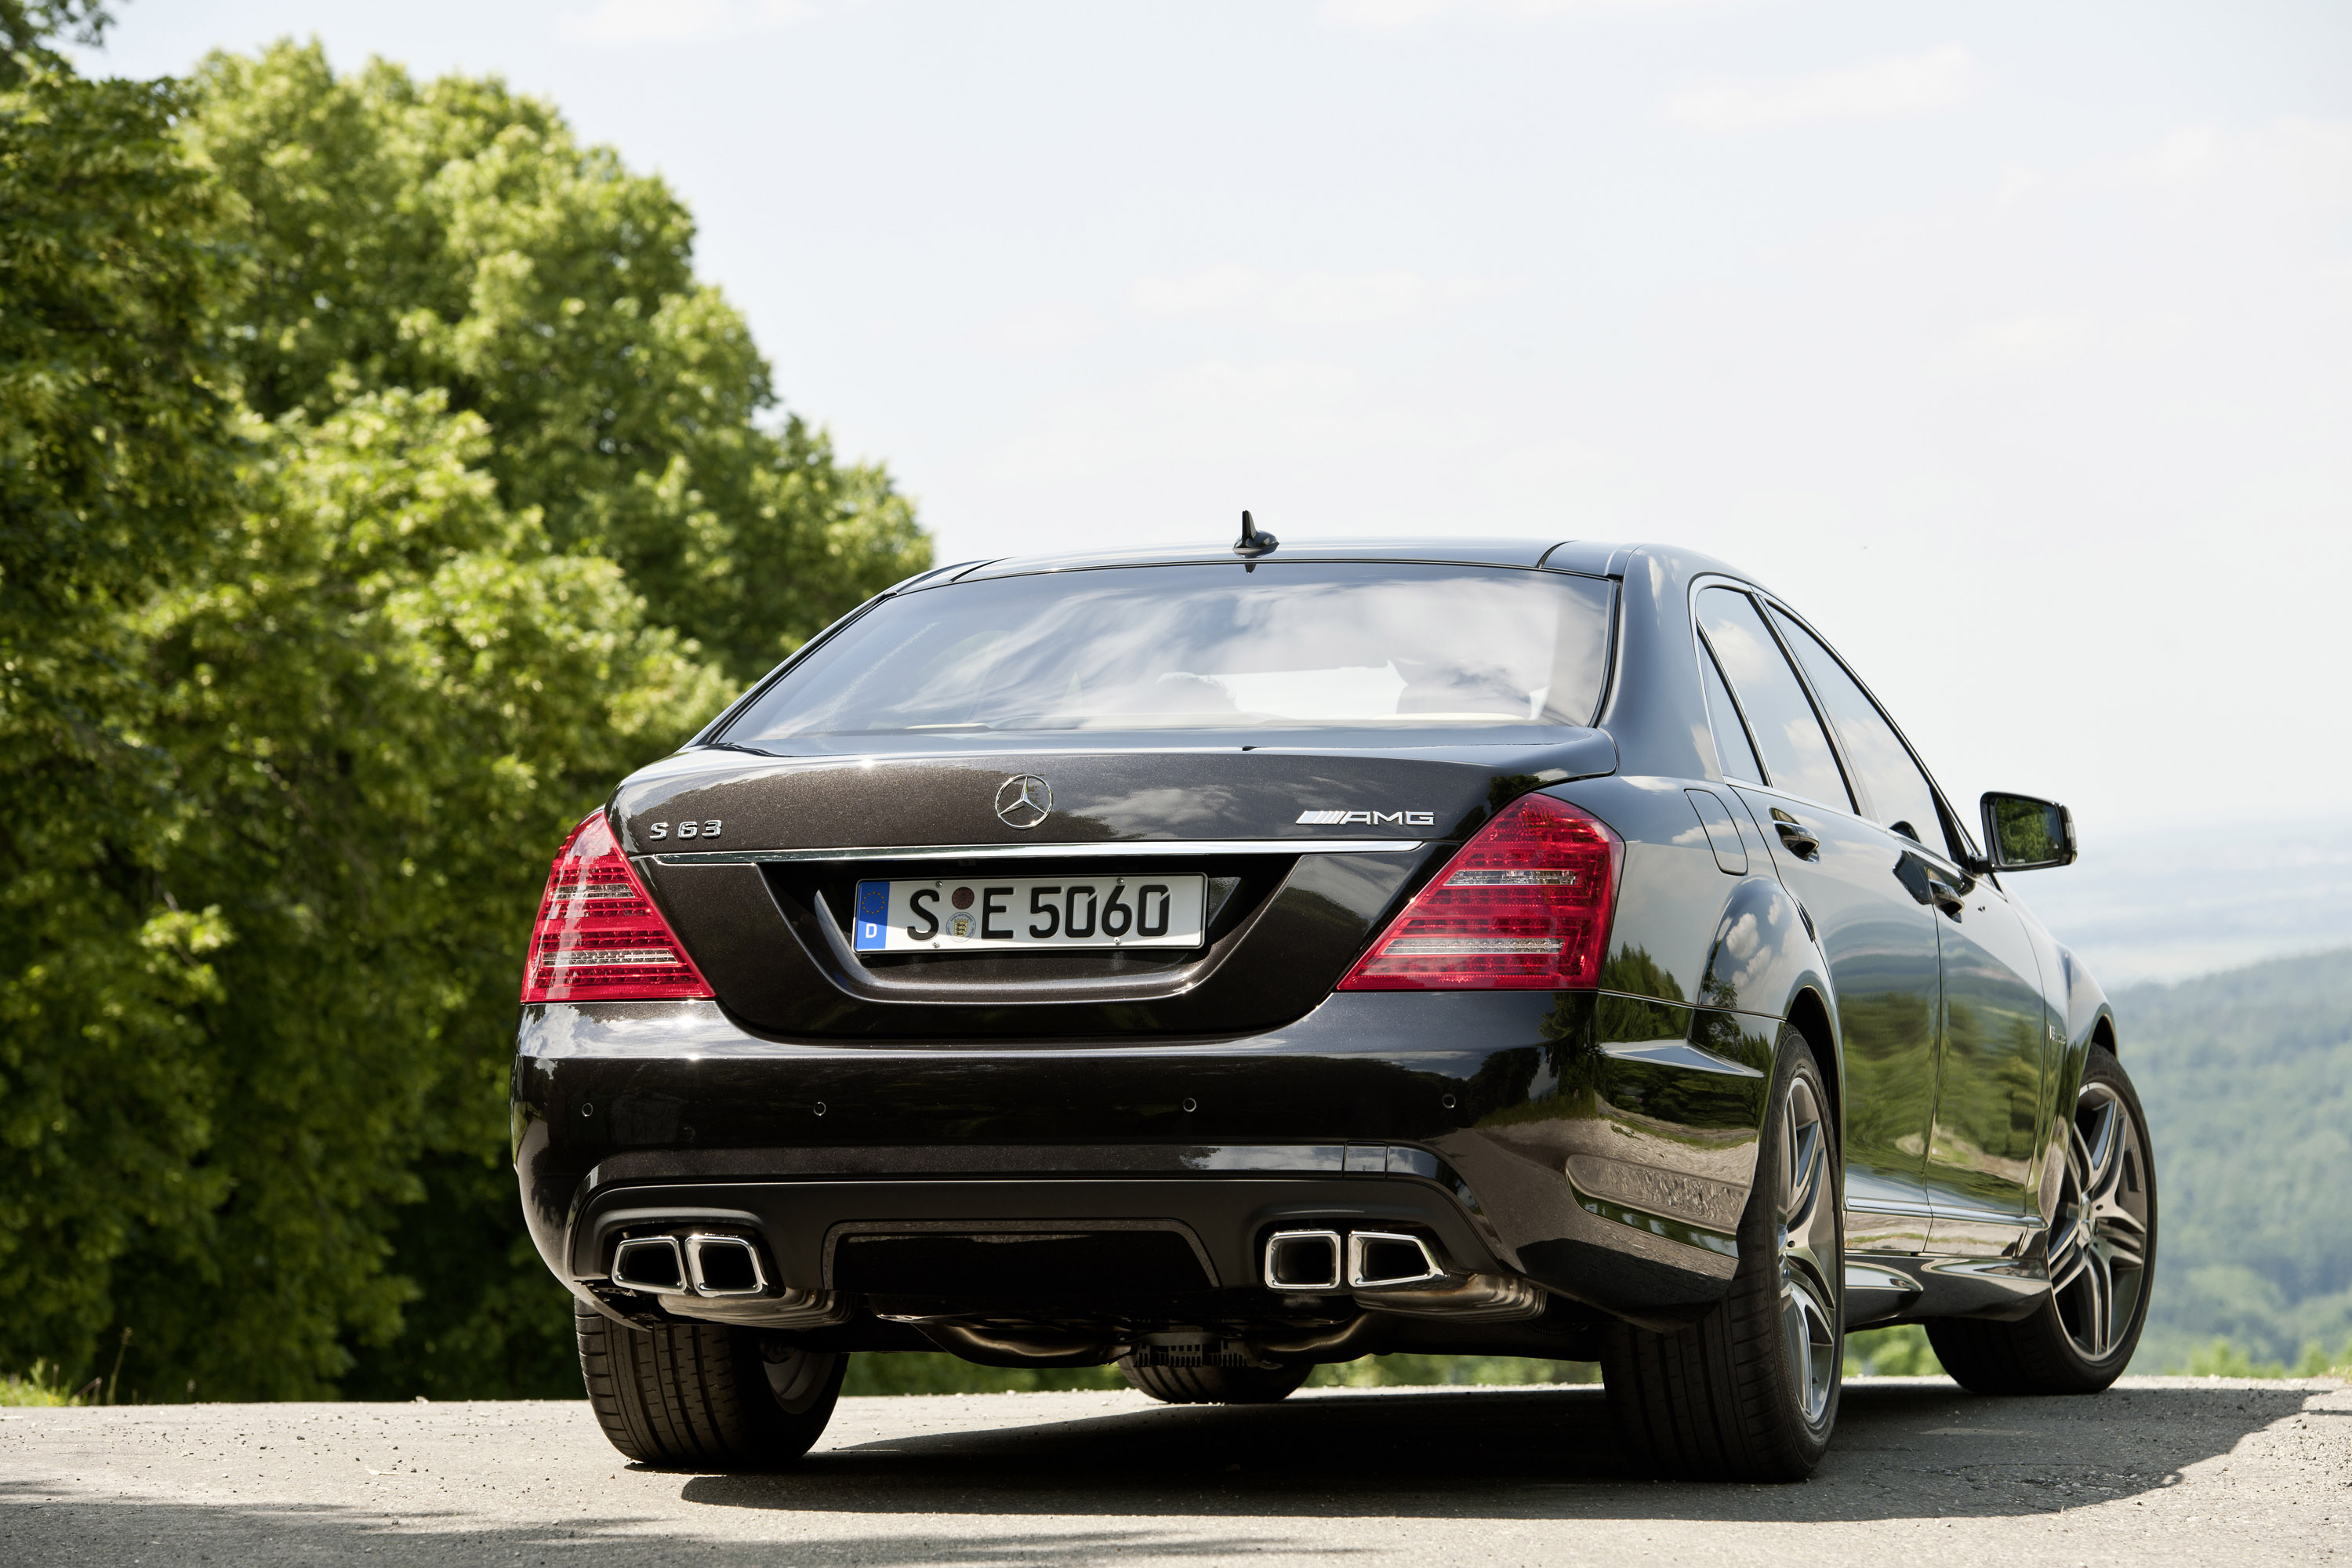 Mercedes-Benz S63 AMG - The ultimate high-performance седан - фотография №18